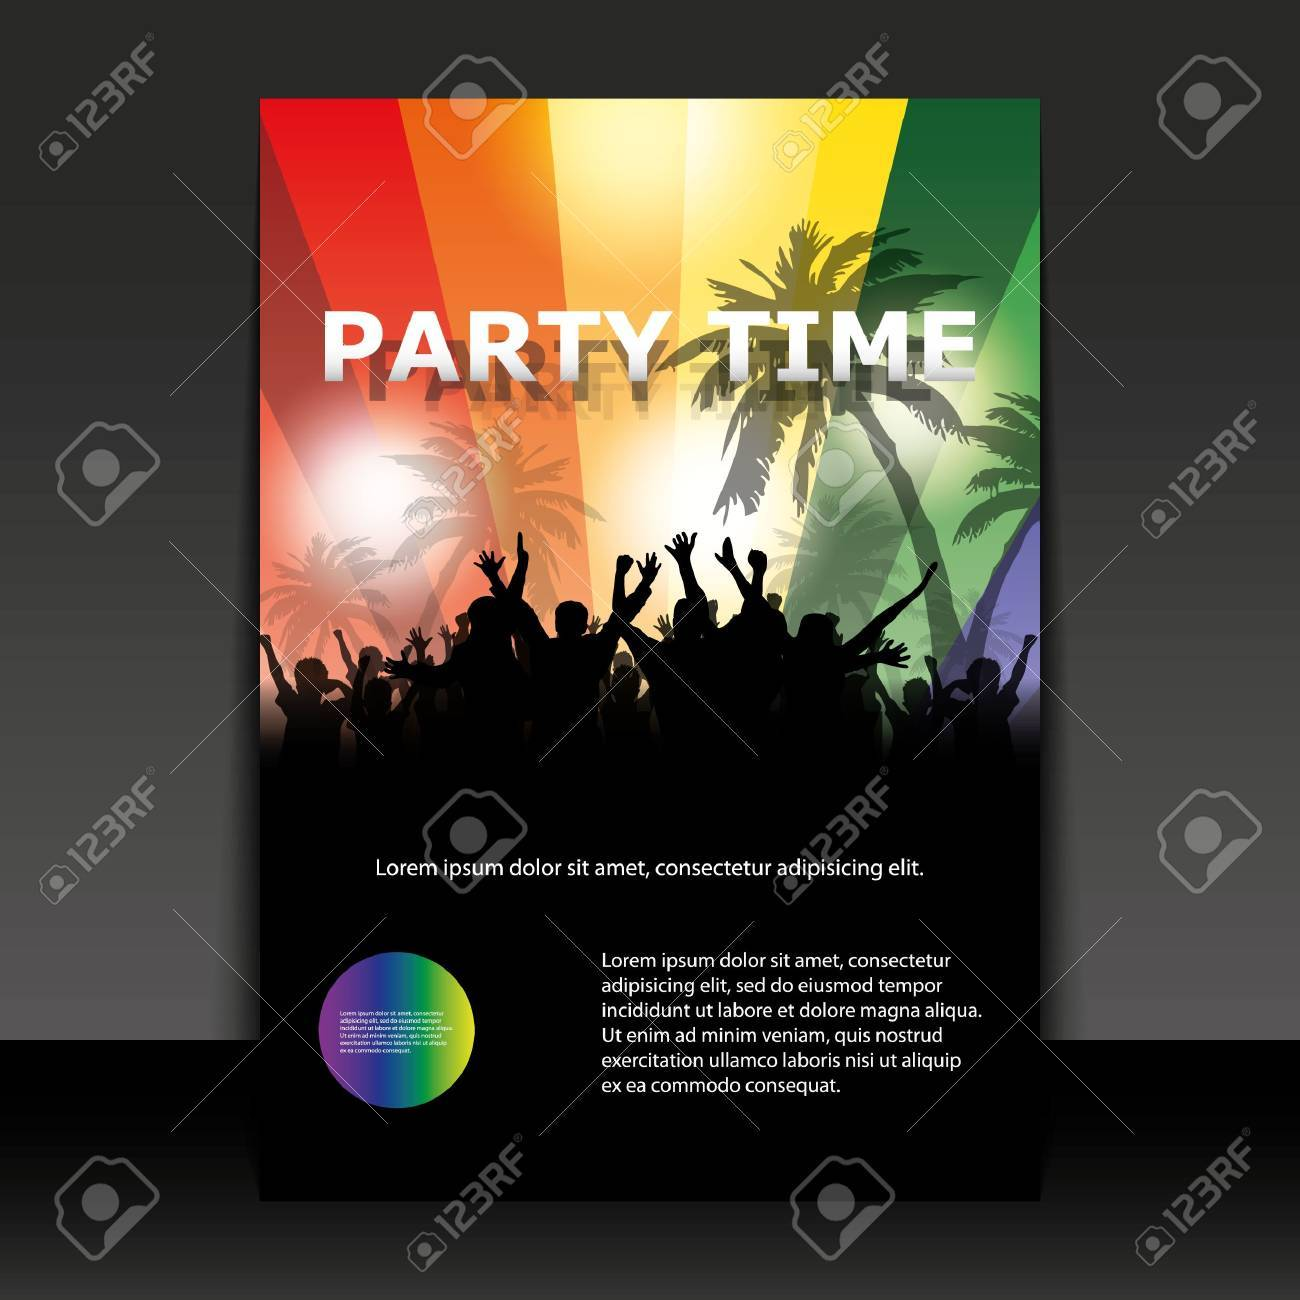 Flyer Design - Party Time Stock Vector - 11713183